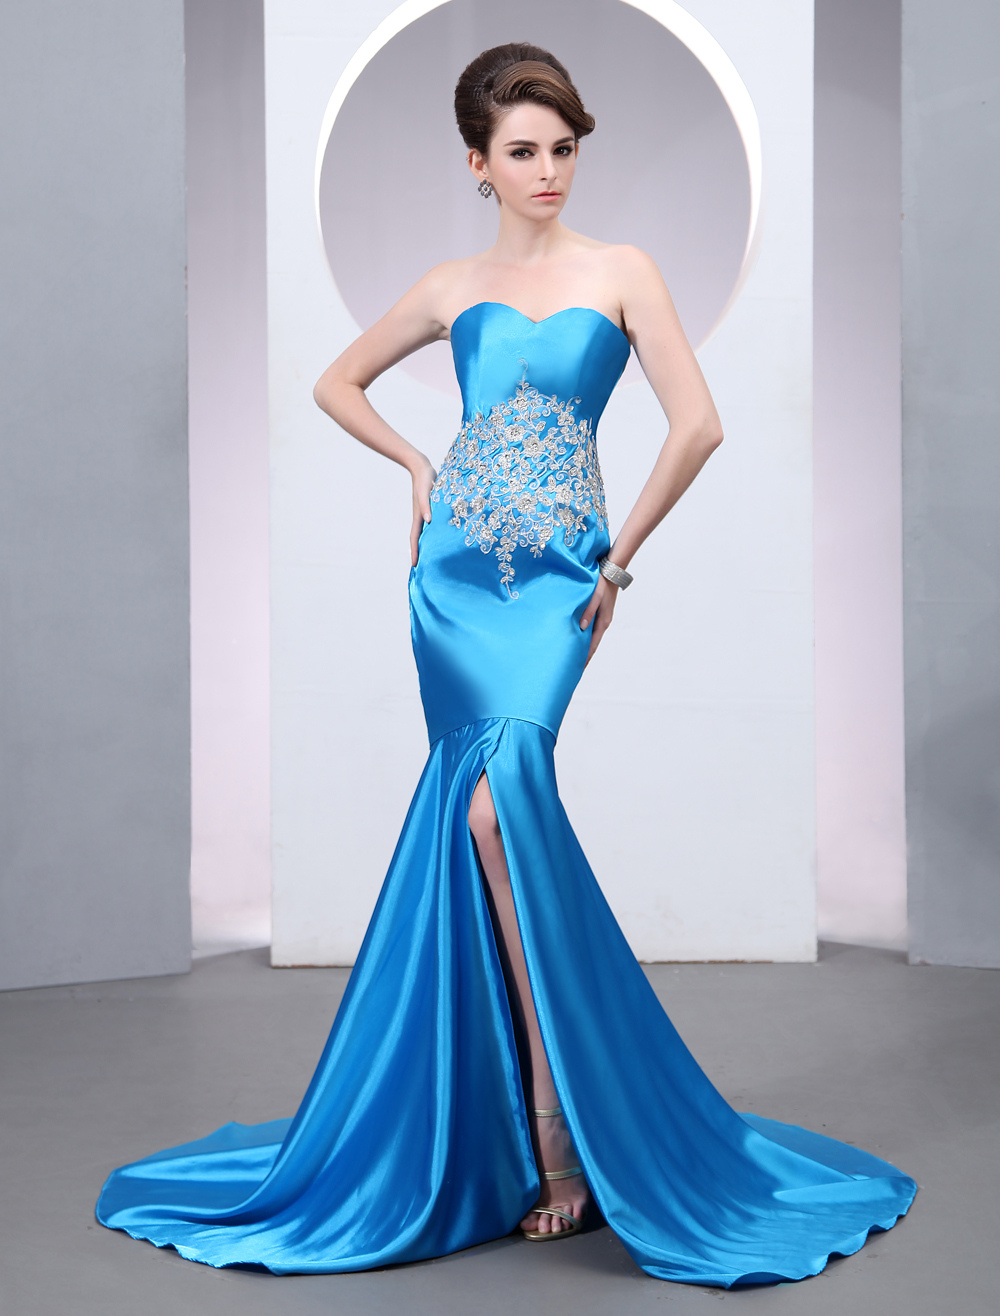 Satin Evening Dress Mermaid Sweetheart Beading Prom Dress Teal Strapless Sleeveless Slit Court Train Party Dress